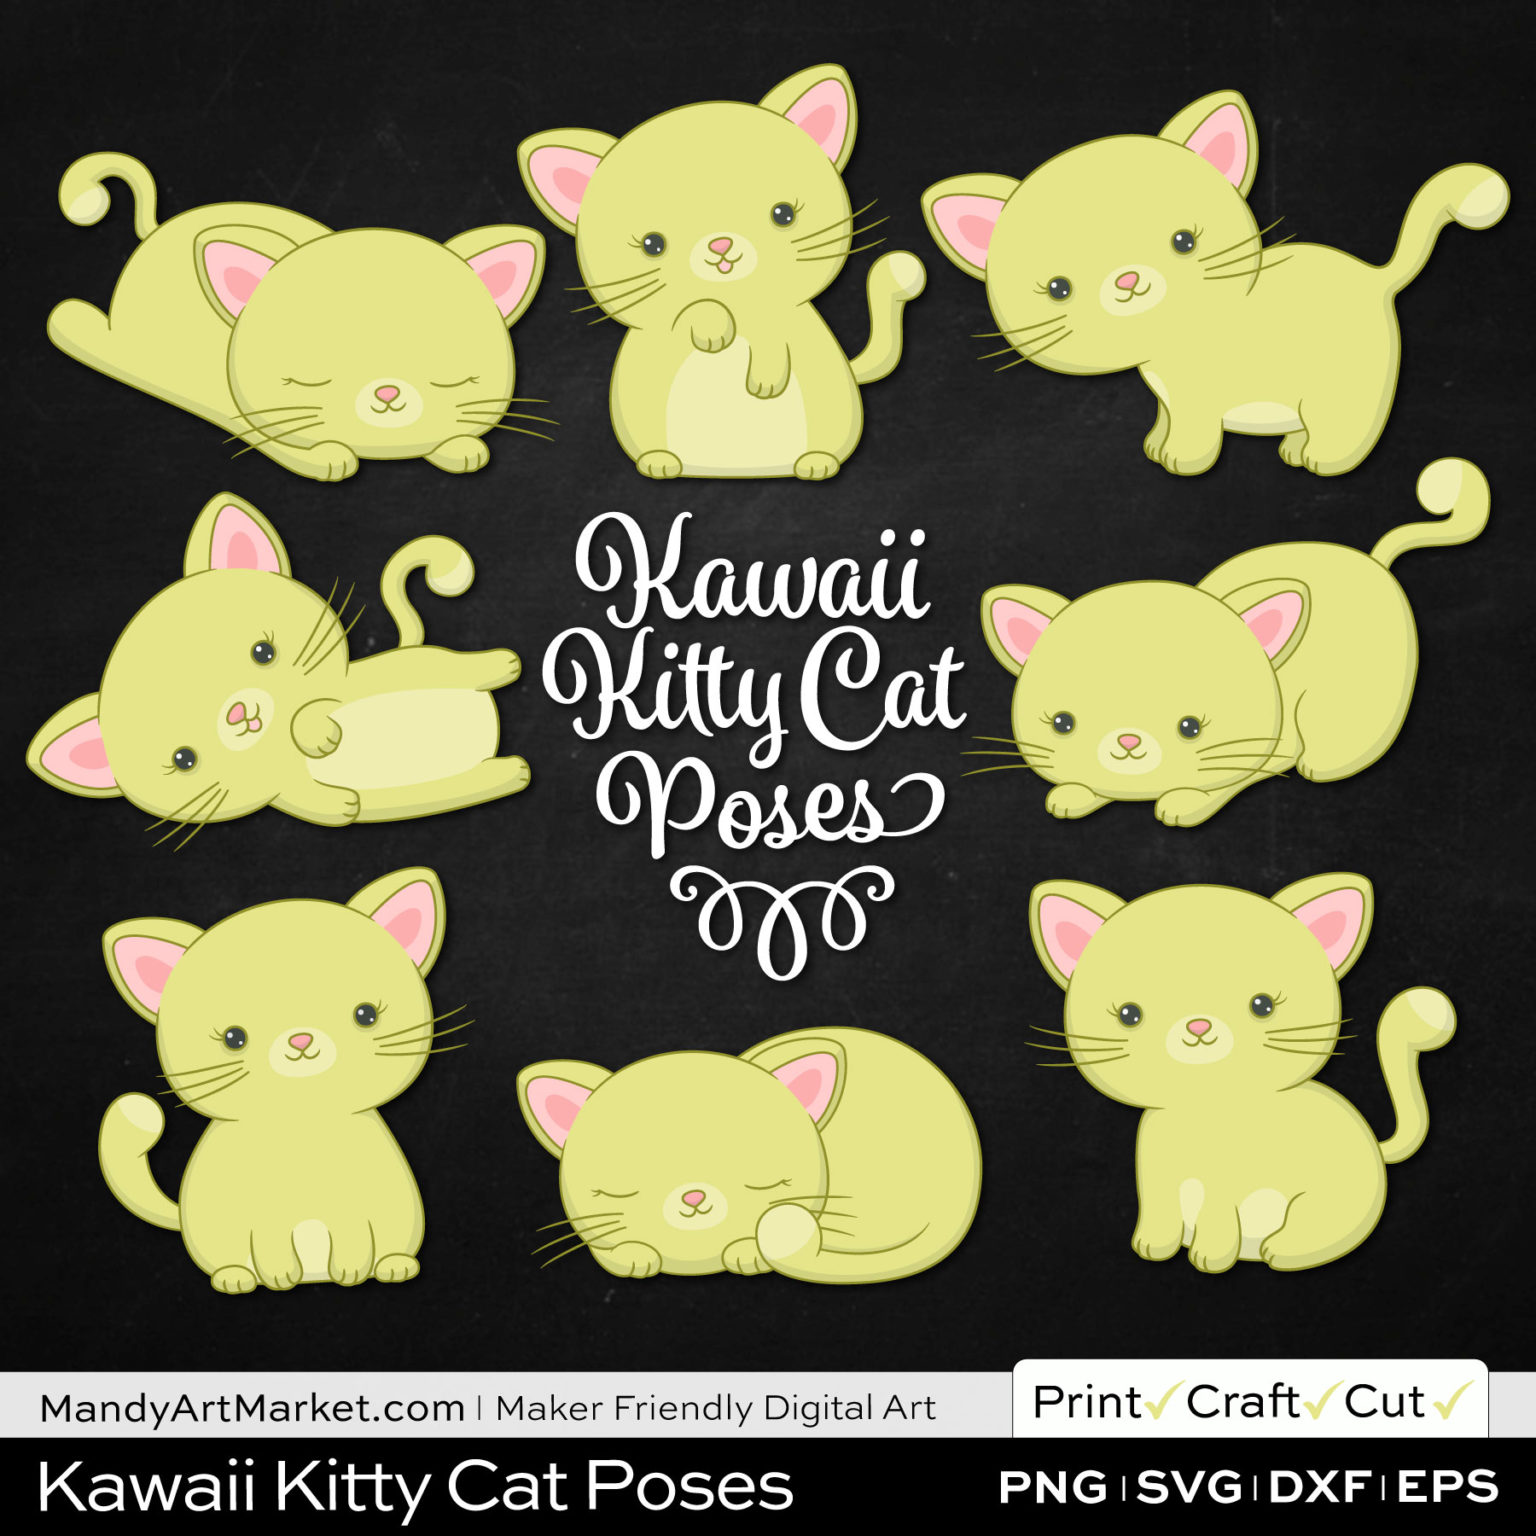 Celery Green Kawaii Kitty Cat Poses Clipart on Black Background